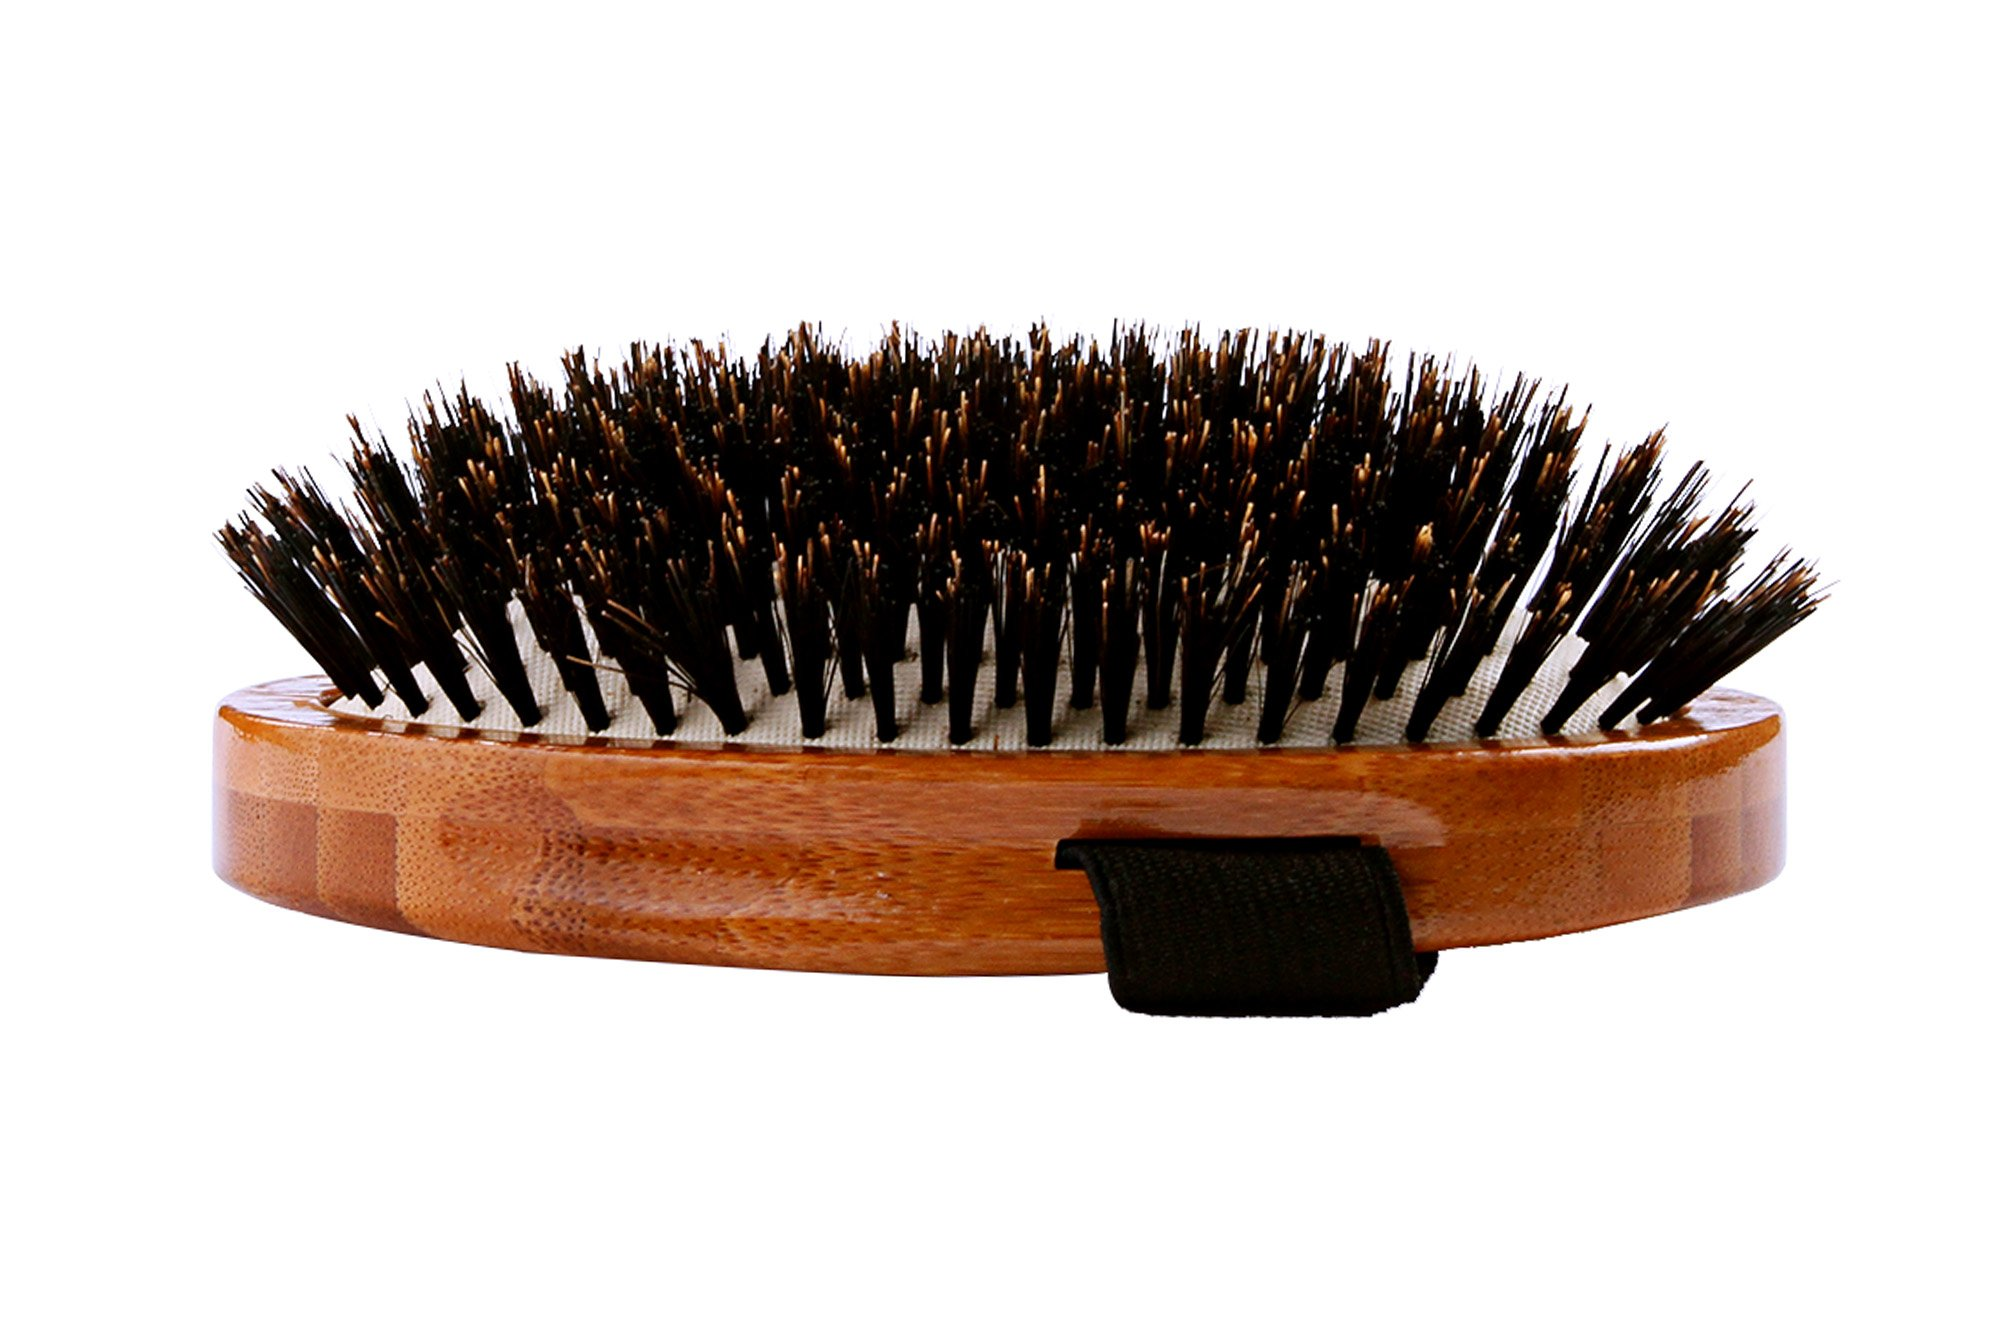 Bass Brushes   Luxury Grade Pet Brush   Shine & Condition   100% Pure Premium Natural Bristle - Firm   Large Palm Design   Natural Bamboo Handle   Solid Finish   Bass Brushes Model #A2-DB